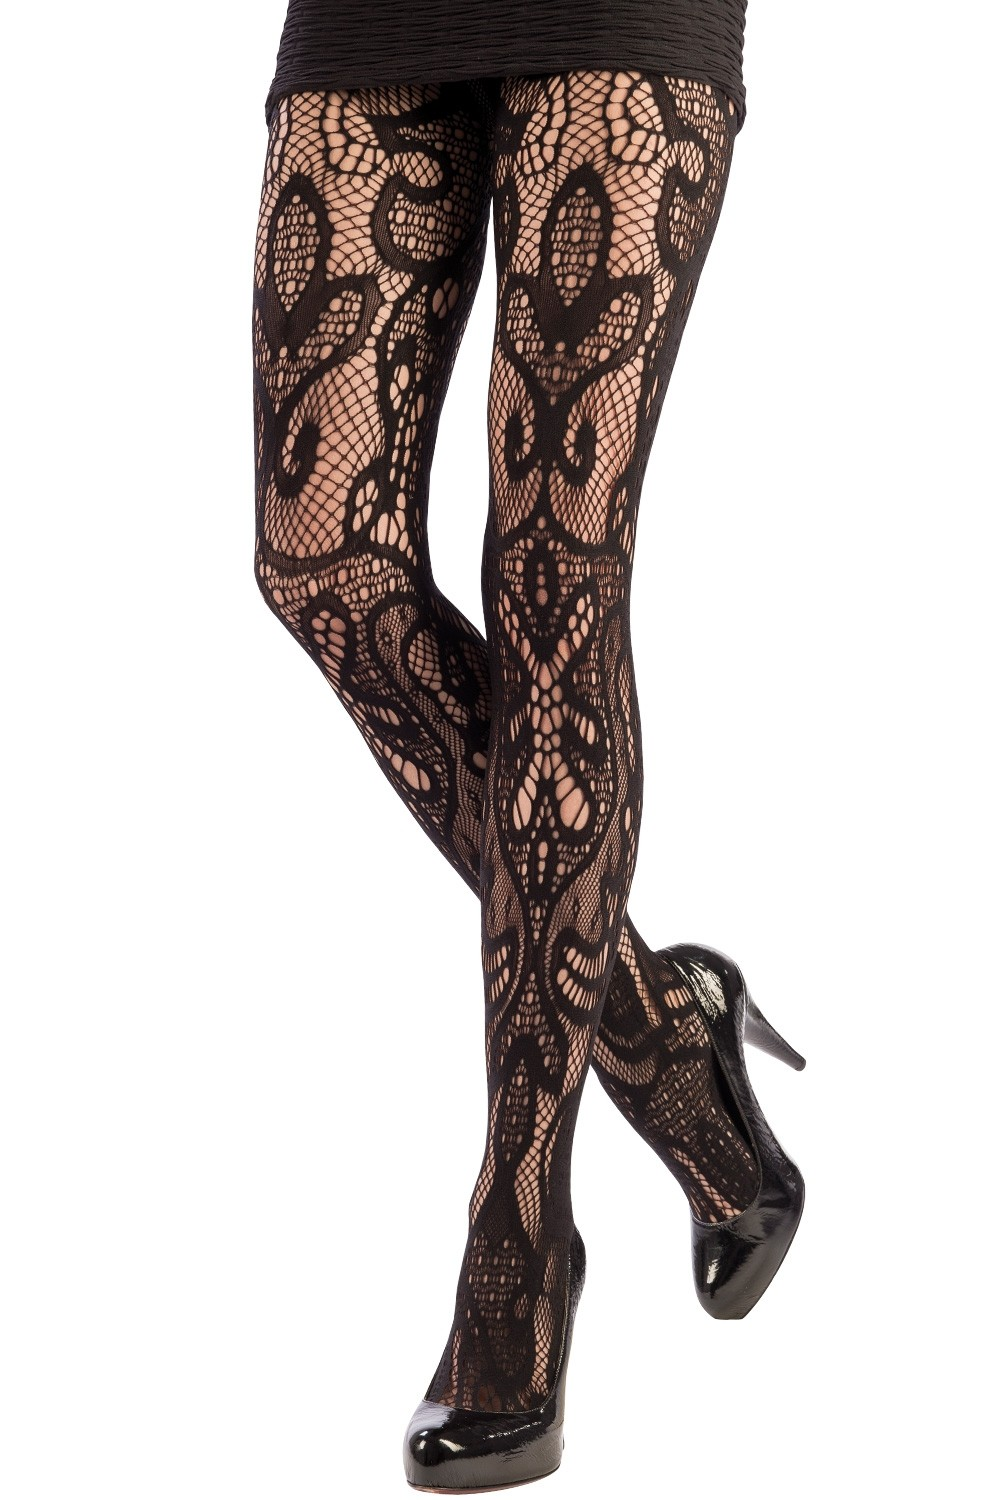 a88f90428 ORIENTAL LACE TIGHTS. Click to expand